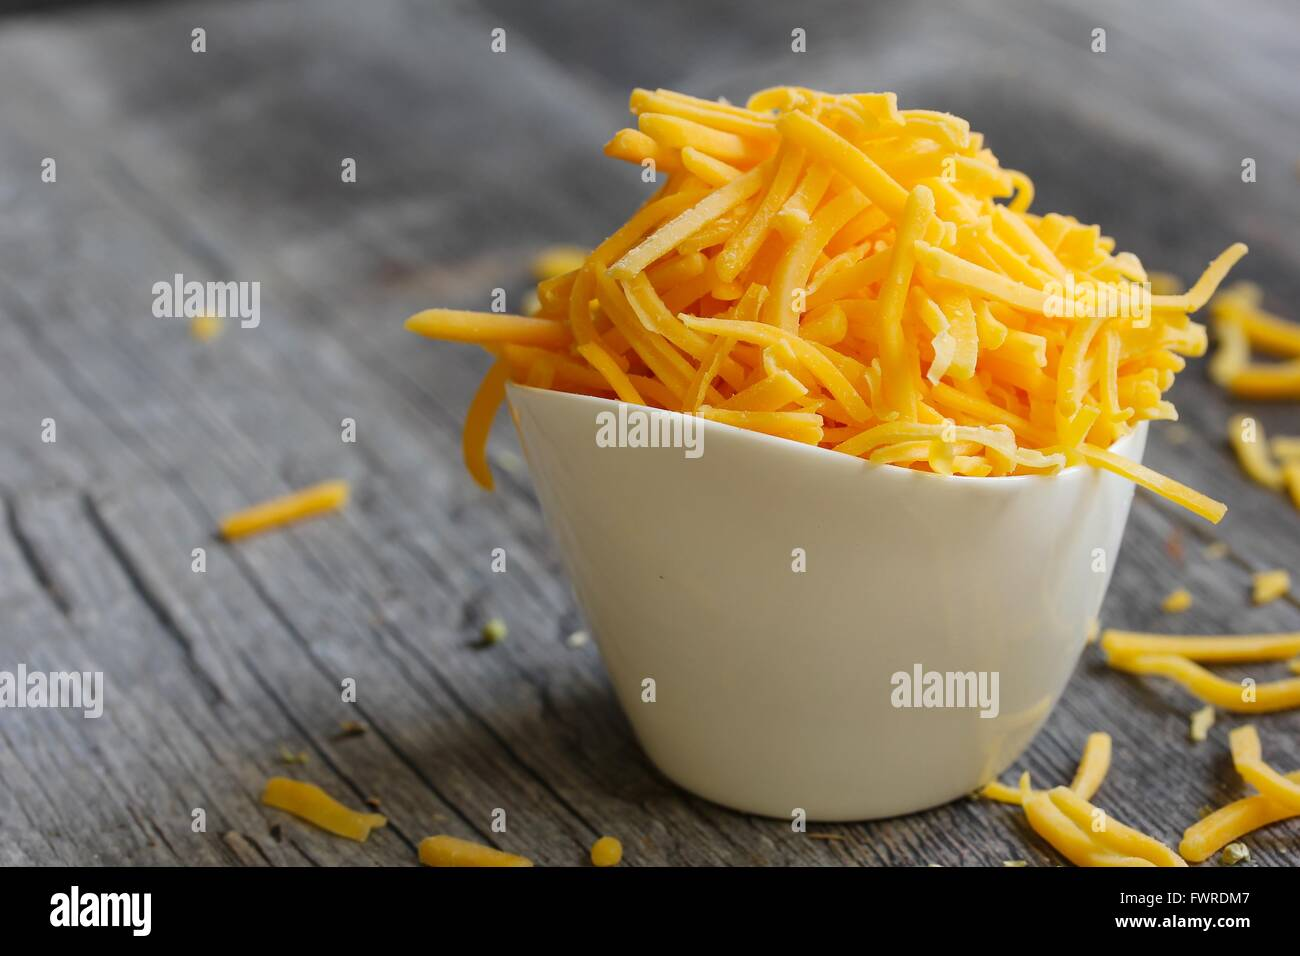 Shredded cheddar cheese in white cup  close up - Stock Image